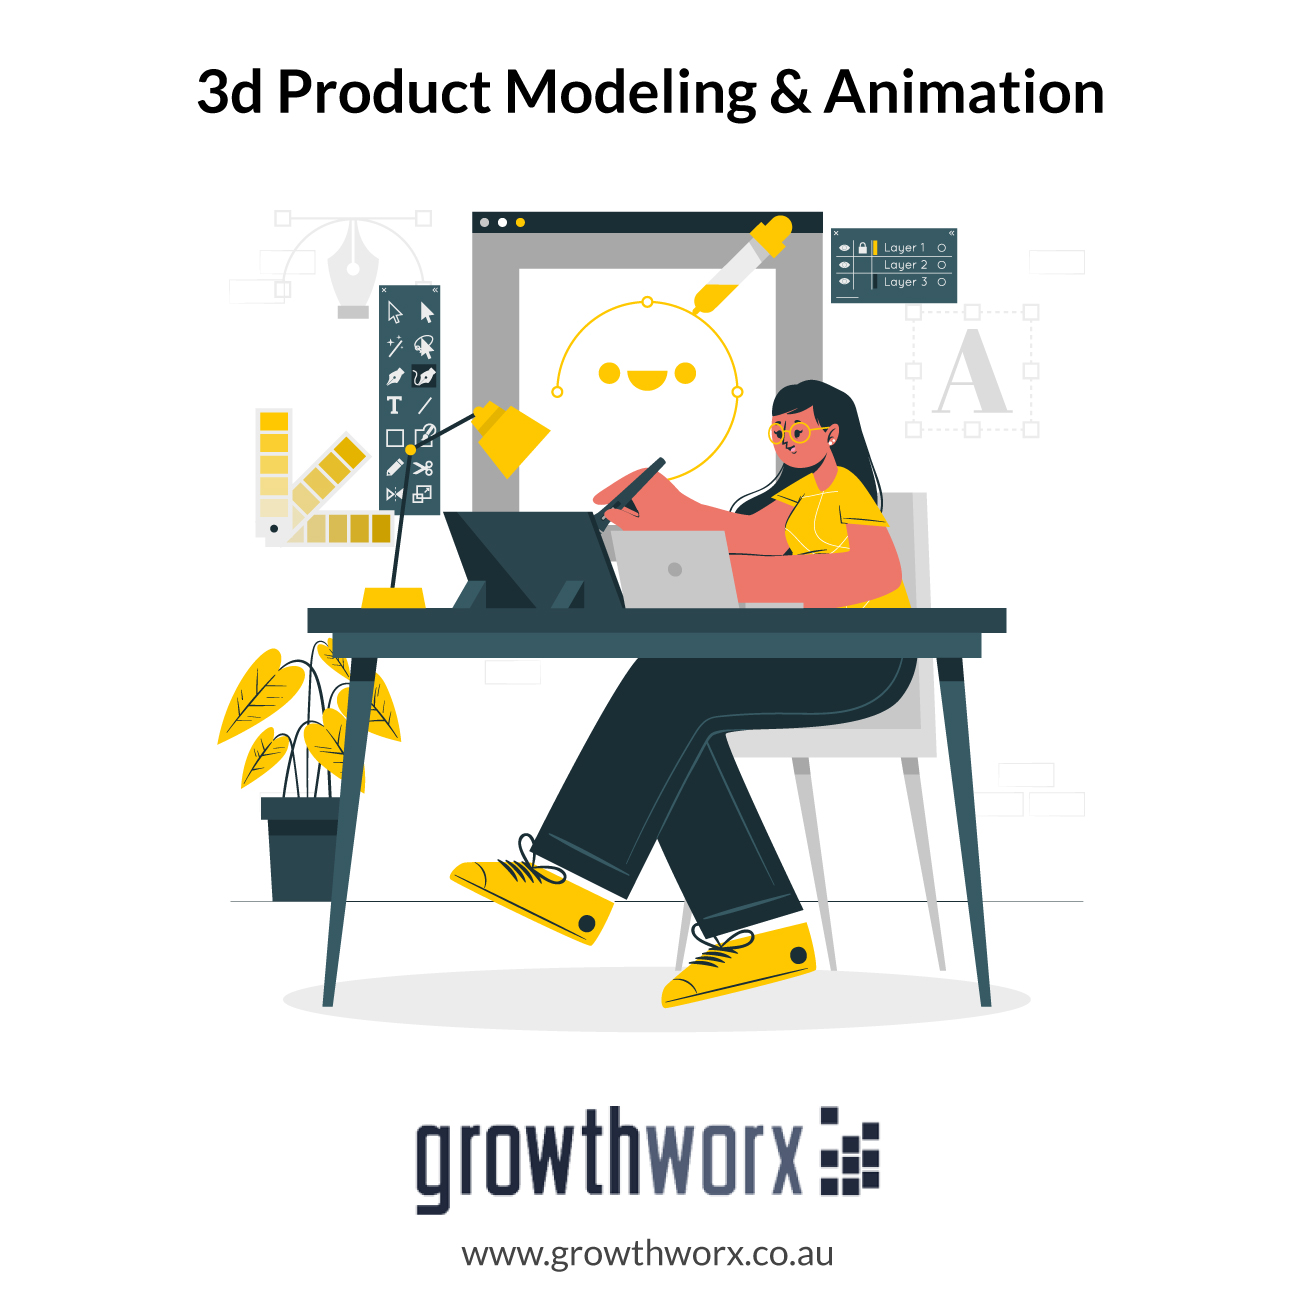 We will create 3d product modeling and animation 1